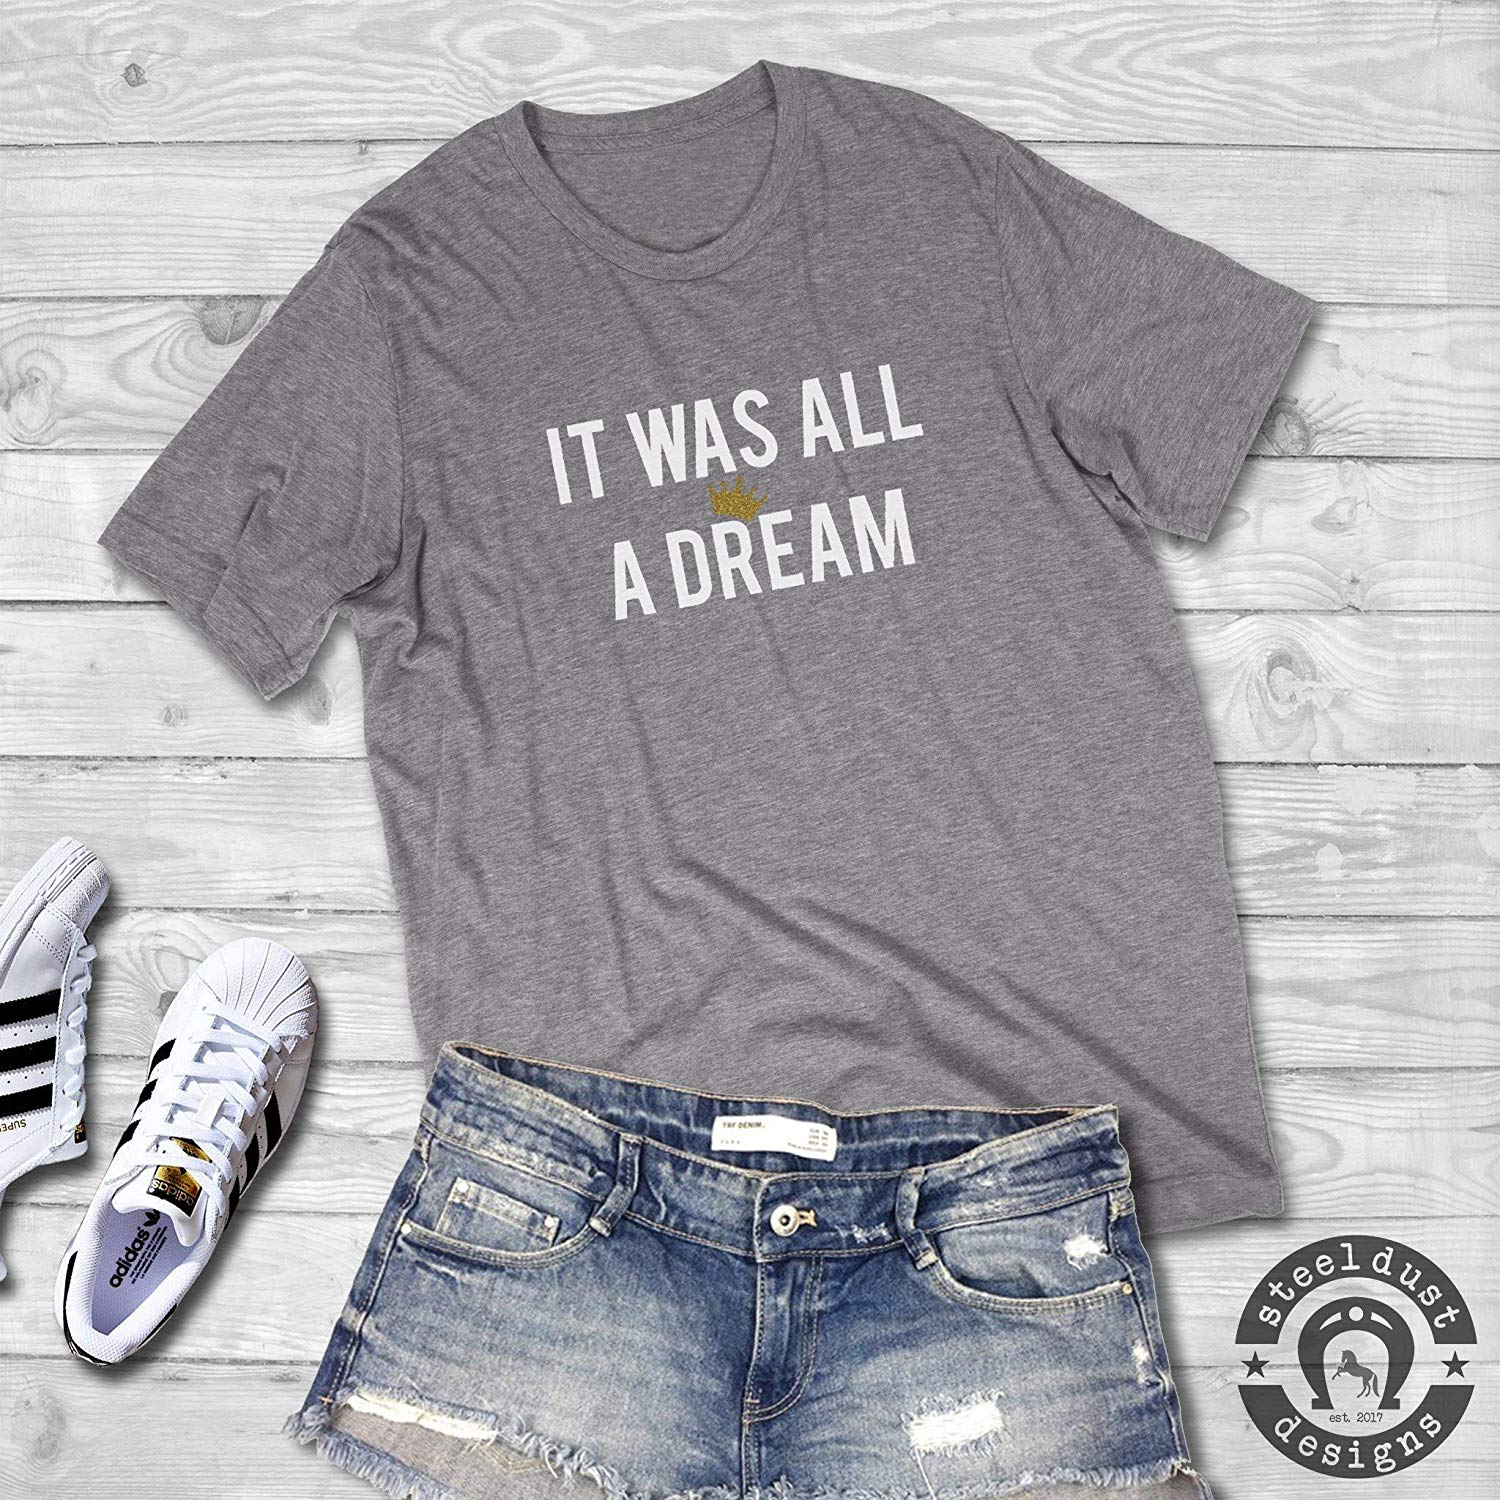 f9ac196f0c3 Get Quotations · It Was All a Dream Shirt